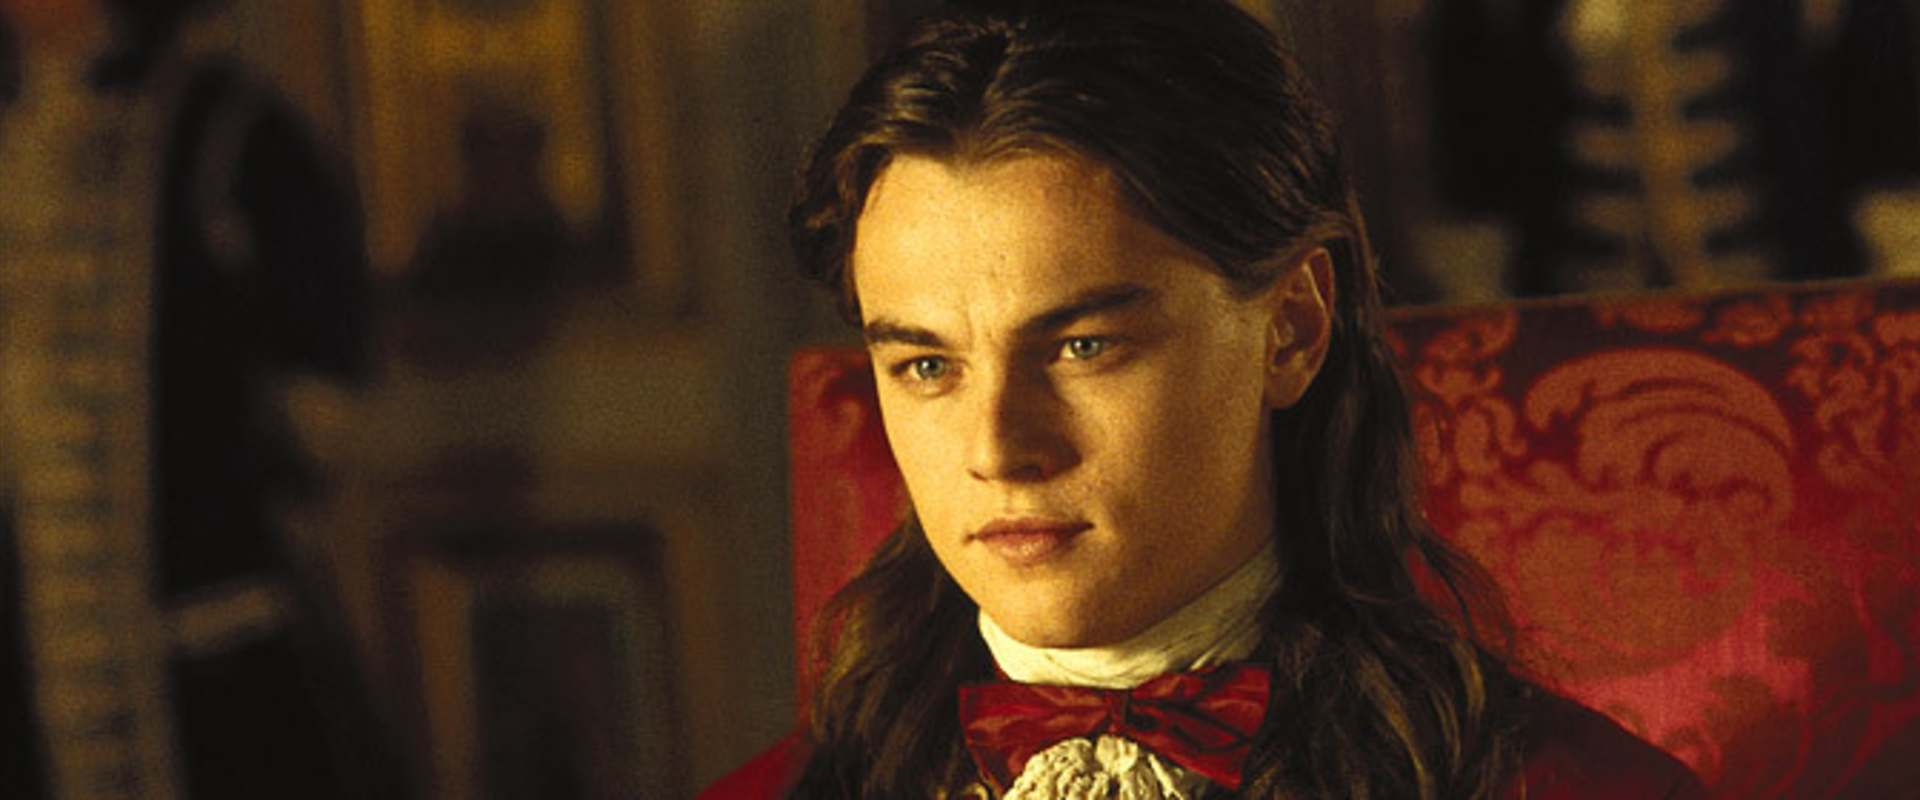 The Man in the Iron Mask background 1